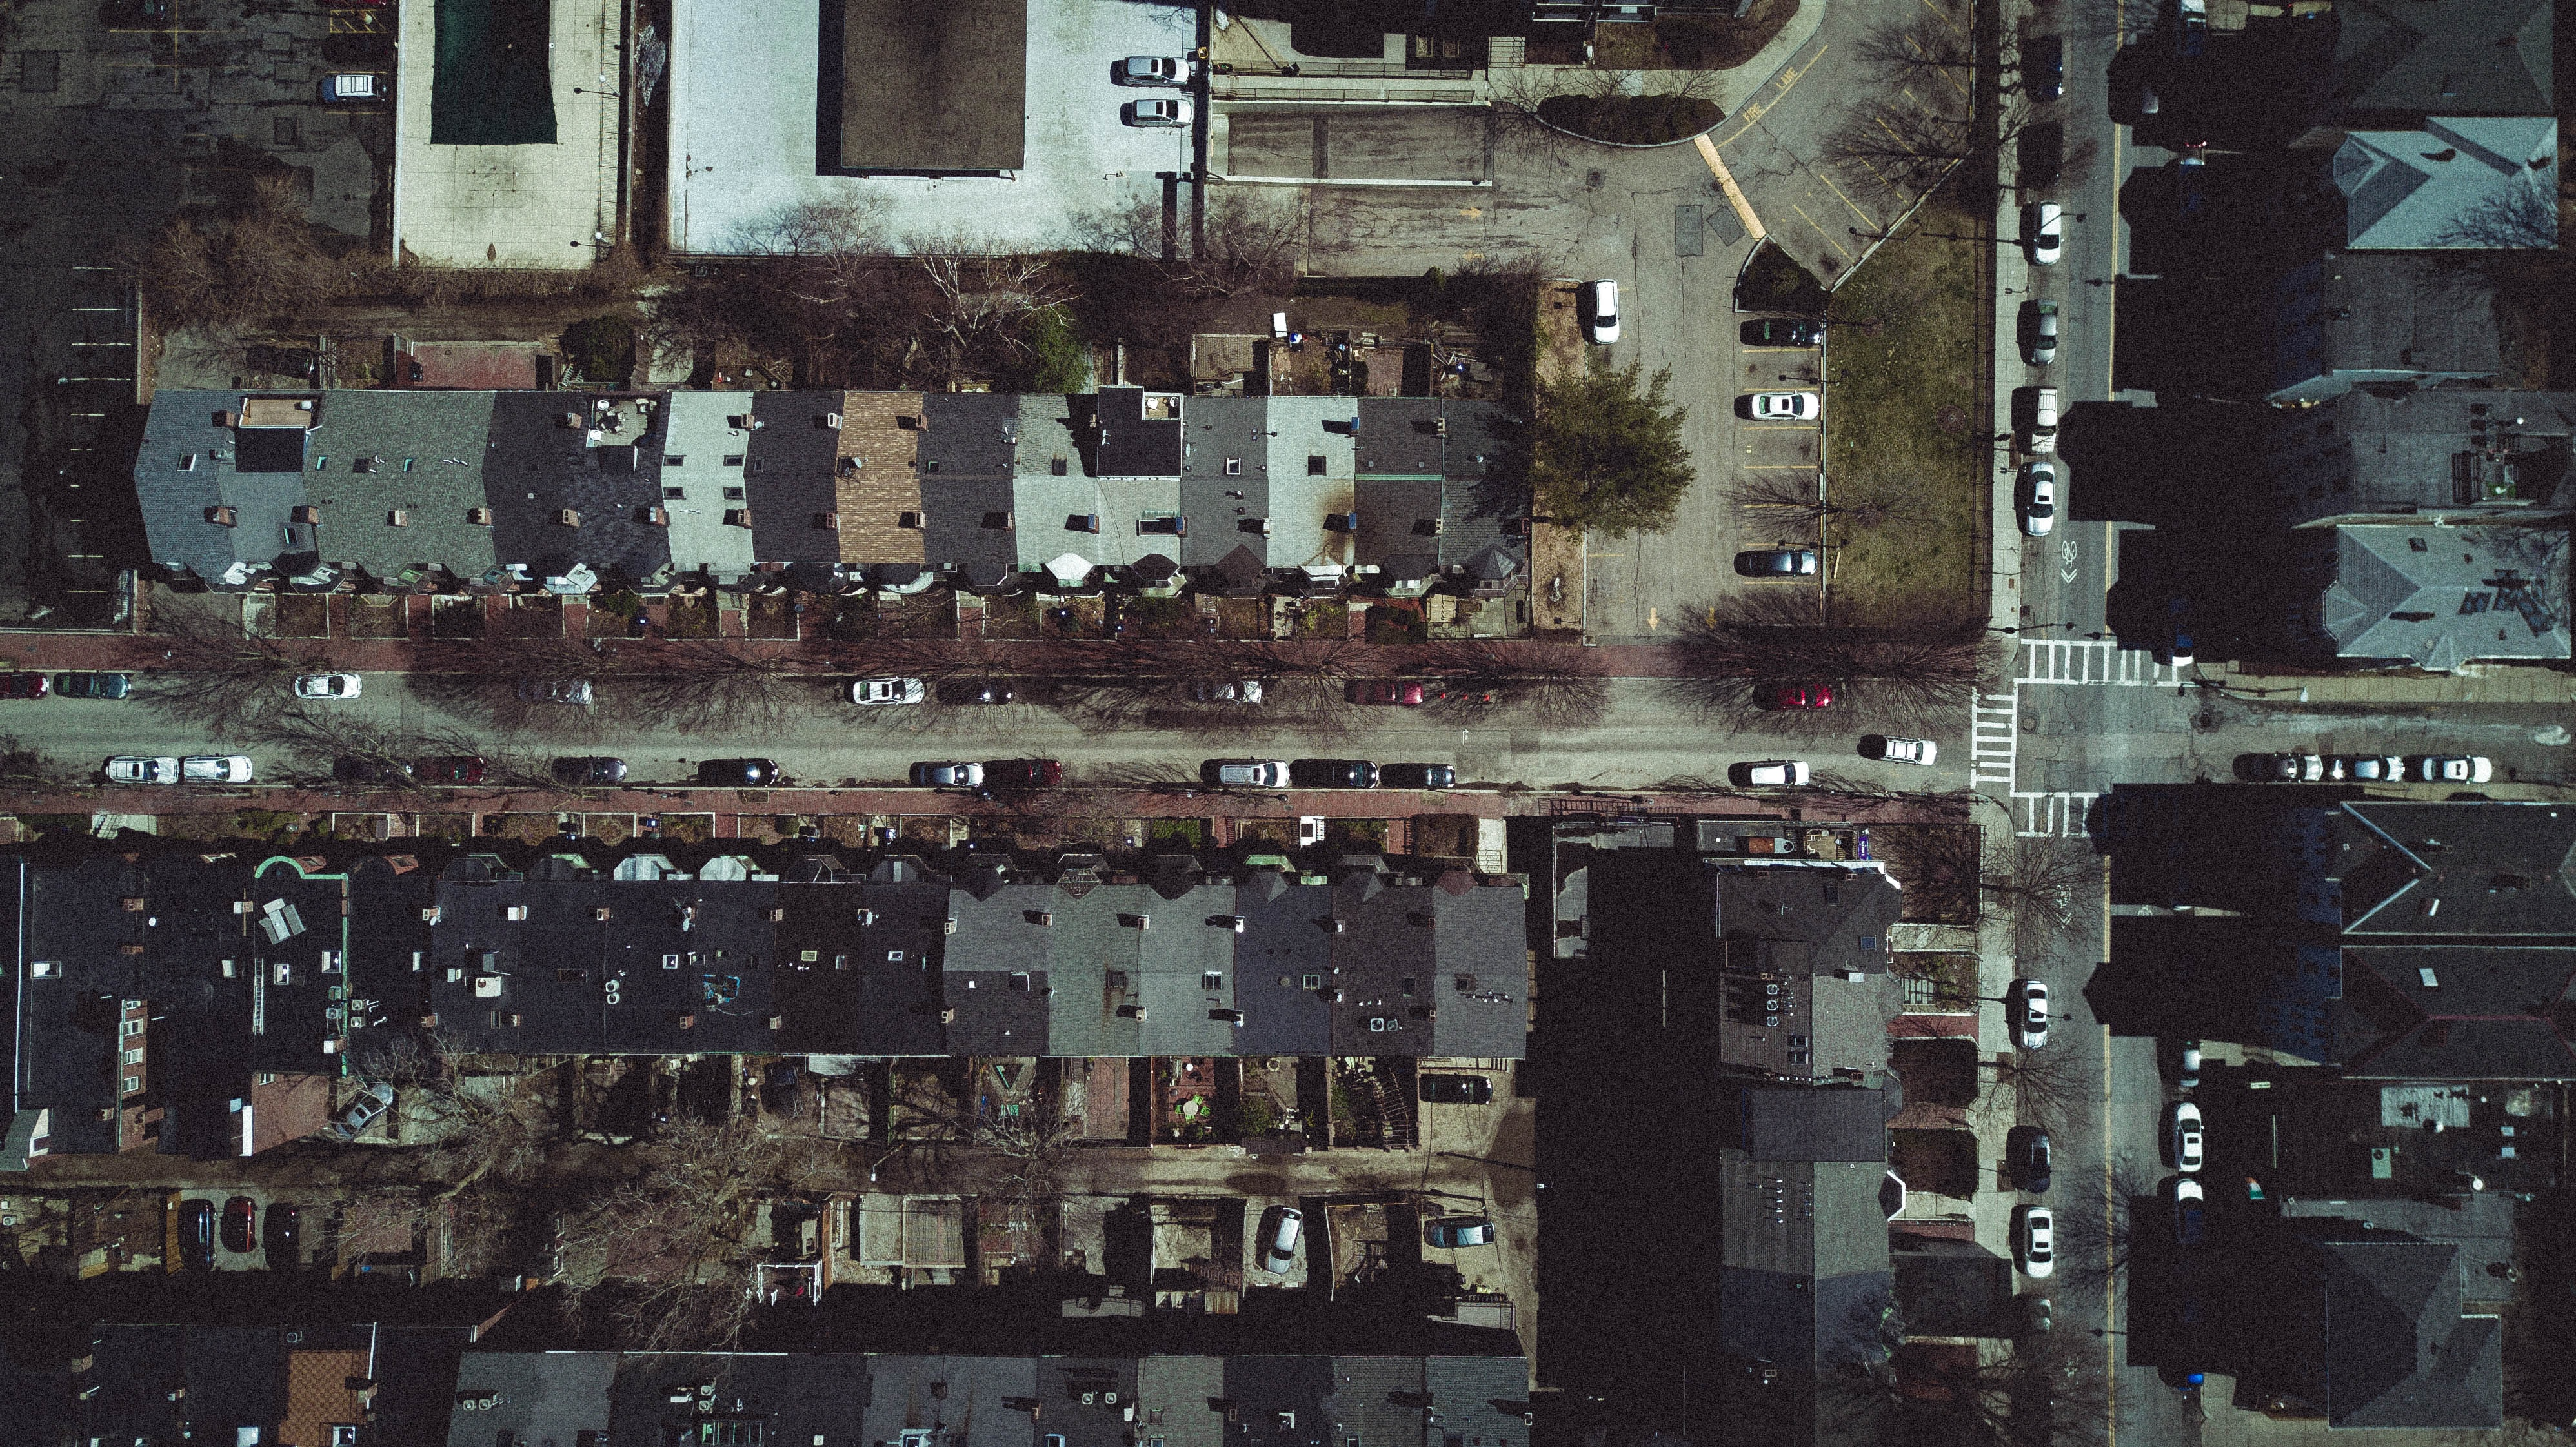 Drone view of suburbs, house roofs, and cars on streets